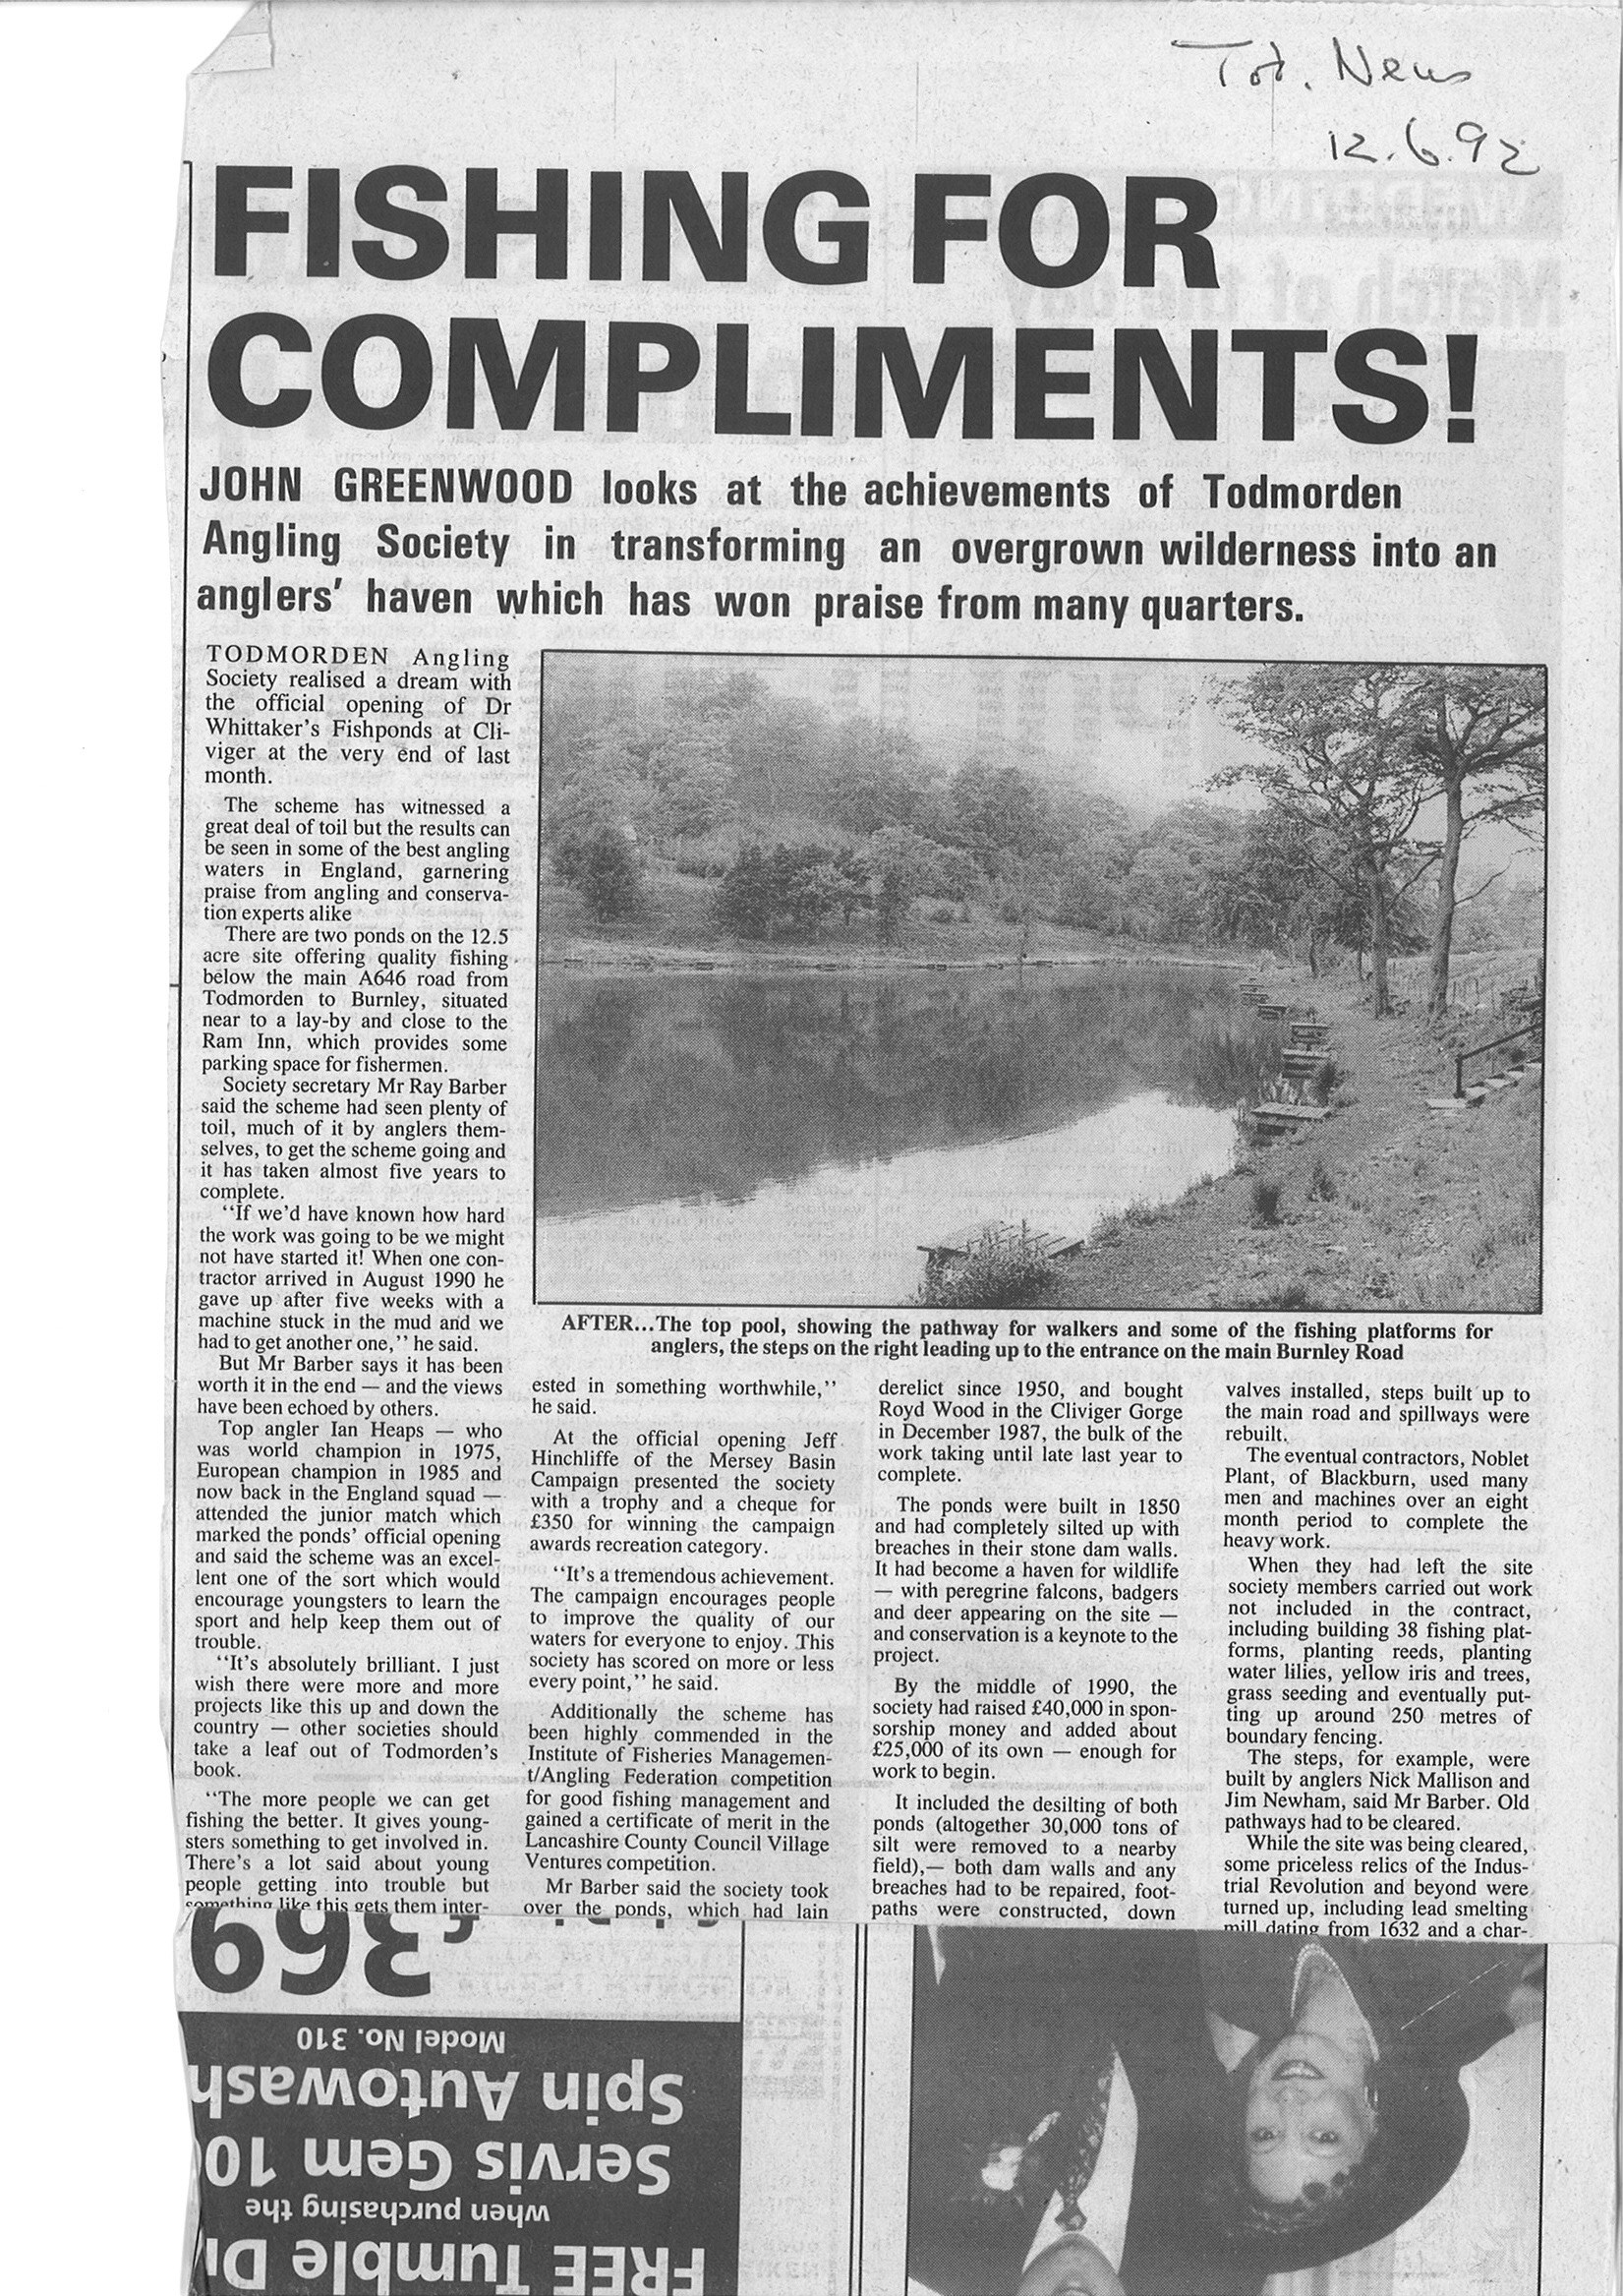 1992 June 12 Fishing for compliments.jpg